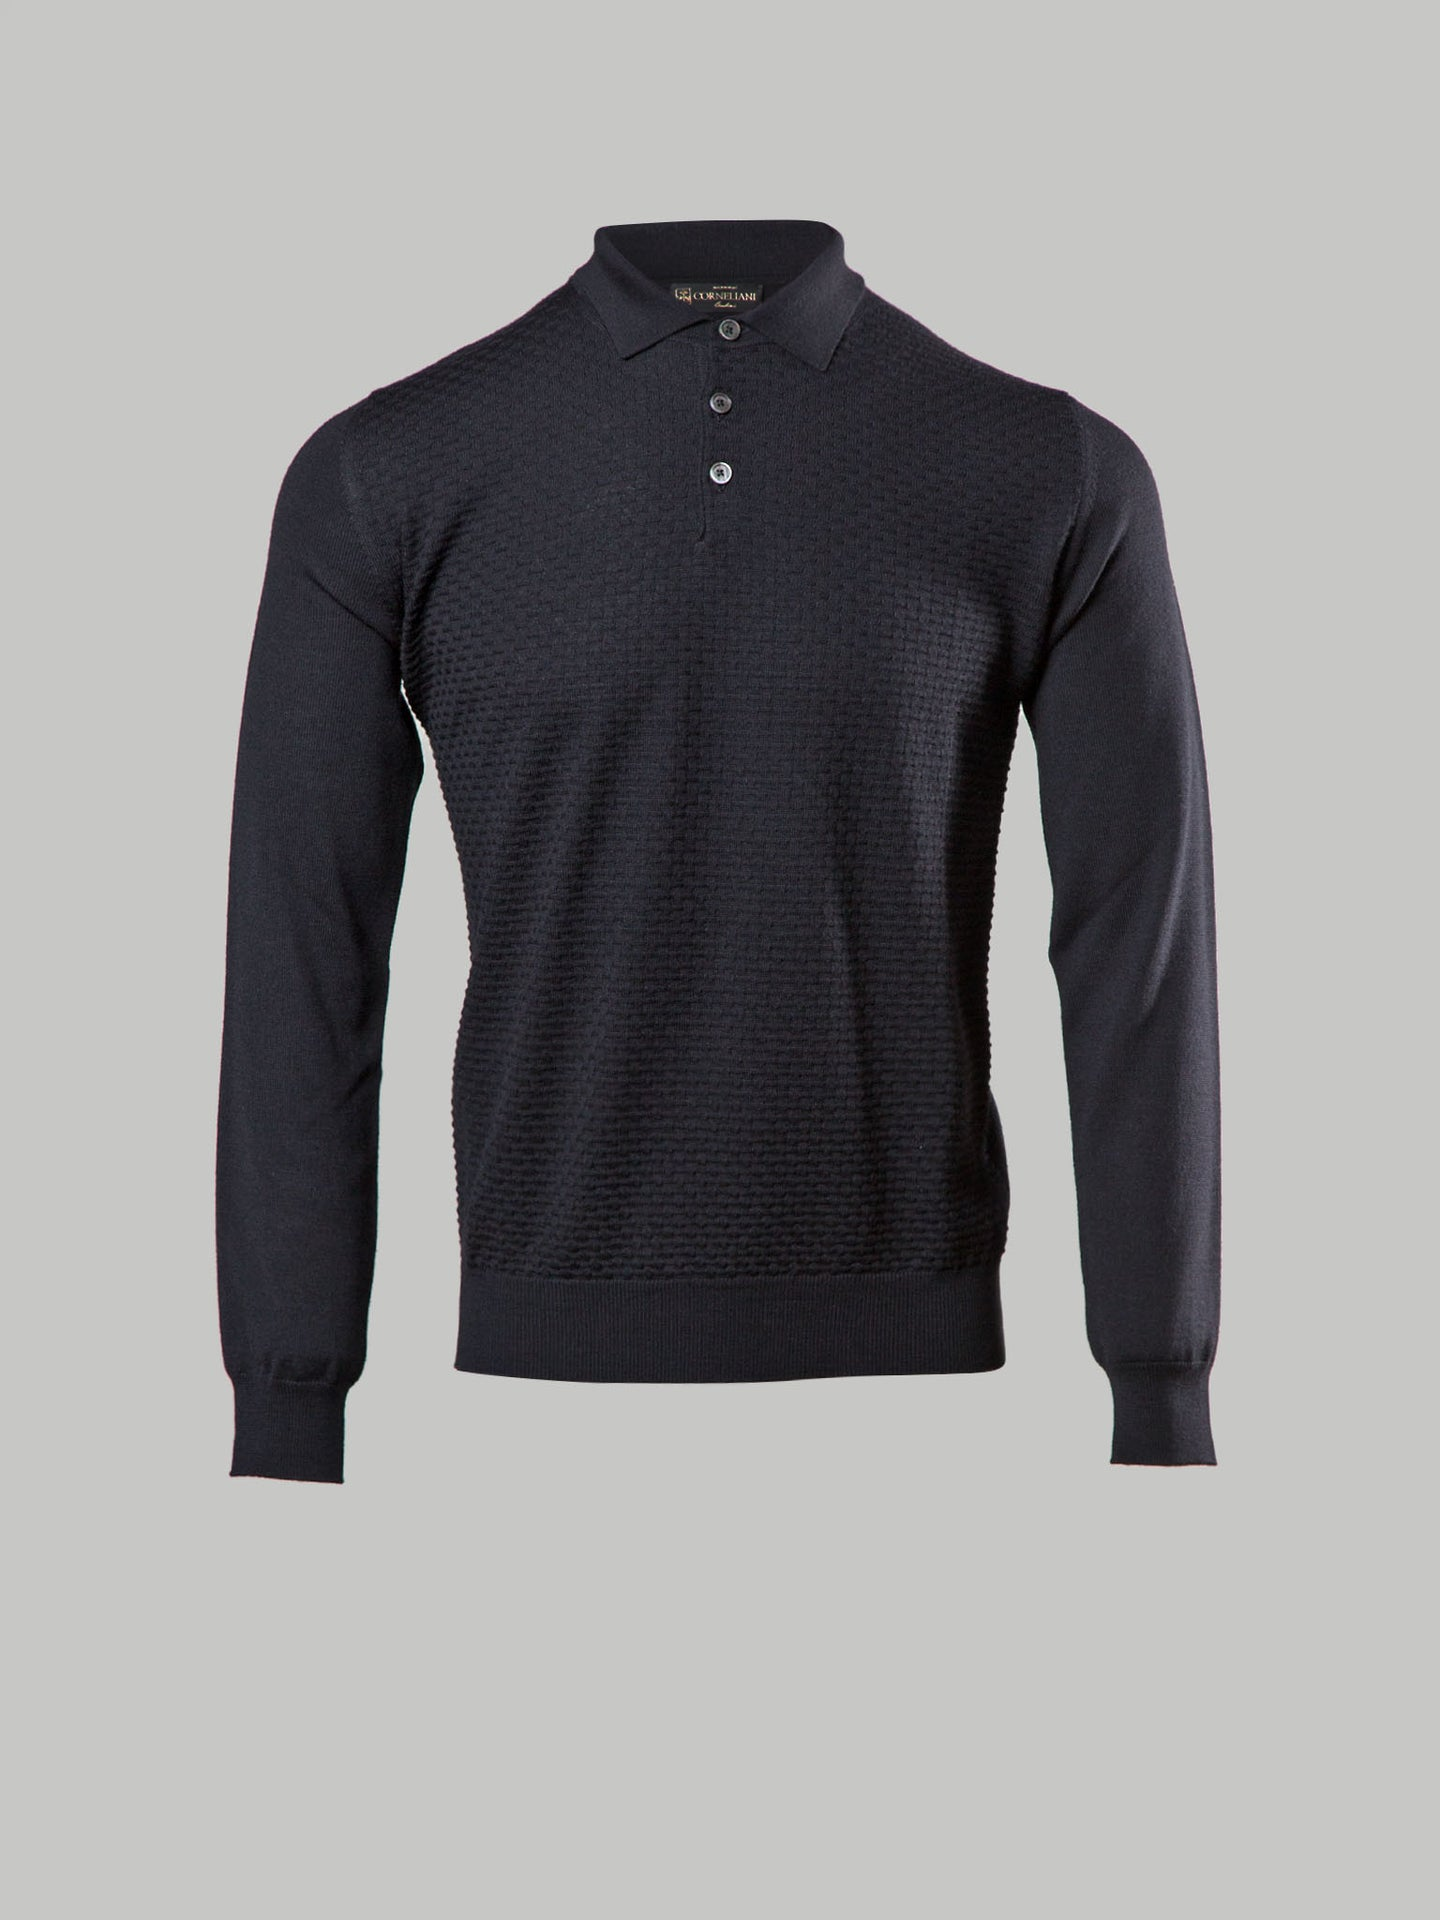 Corneliani Cable Knit Polo (Black)